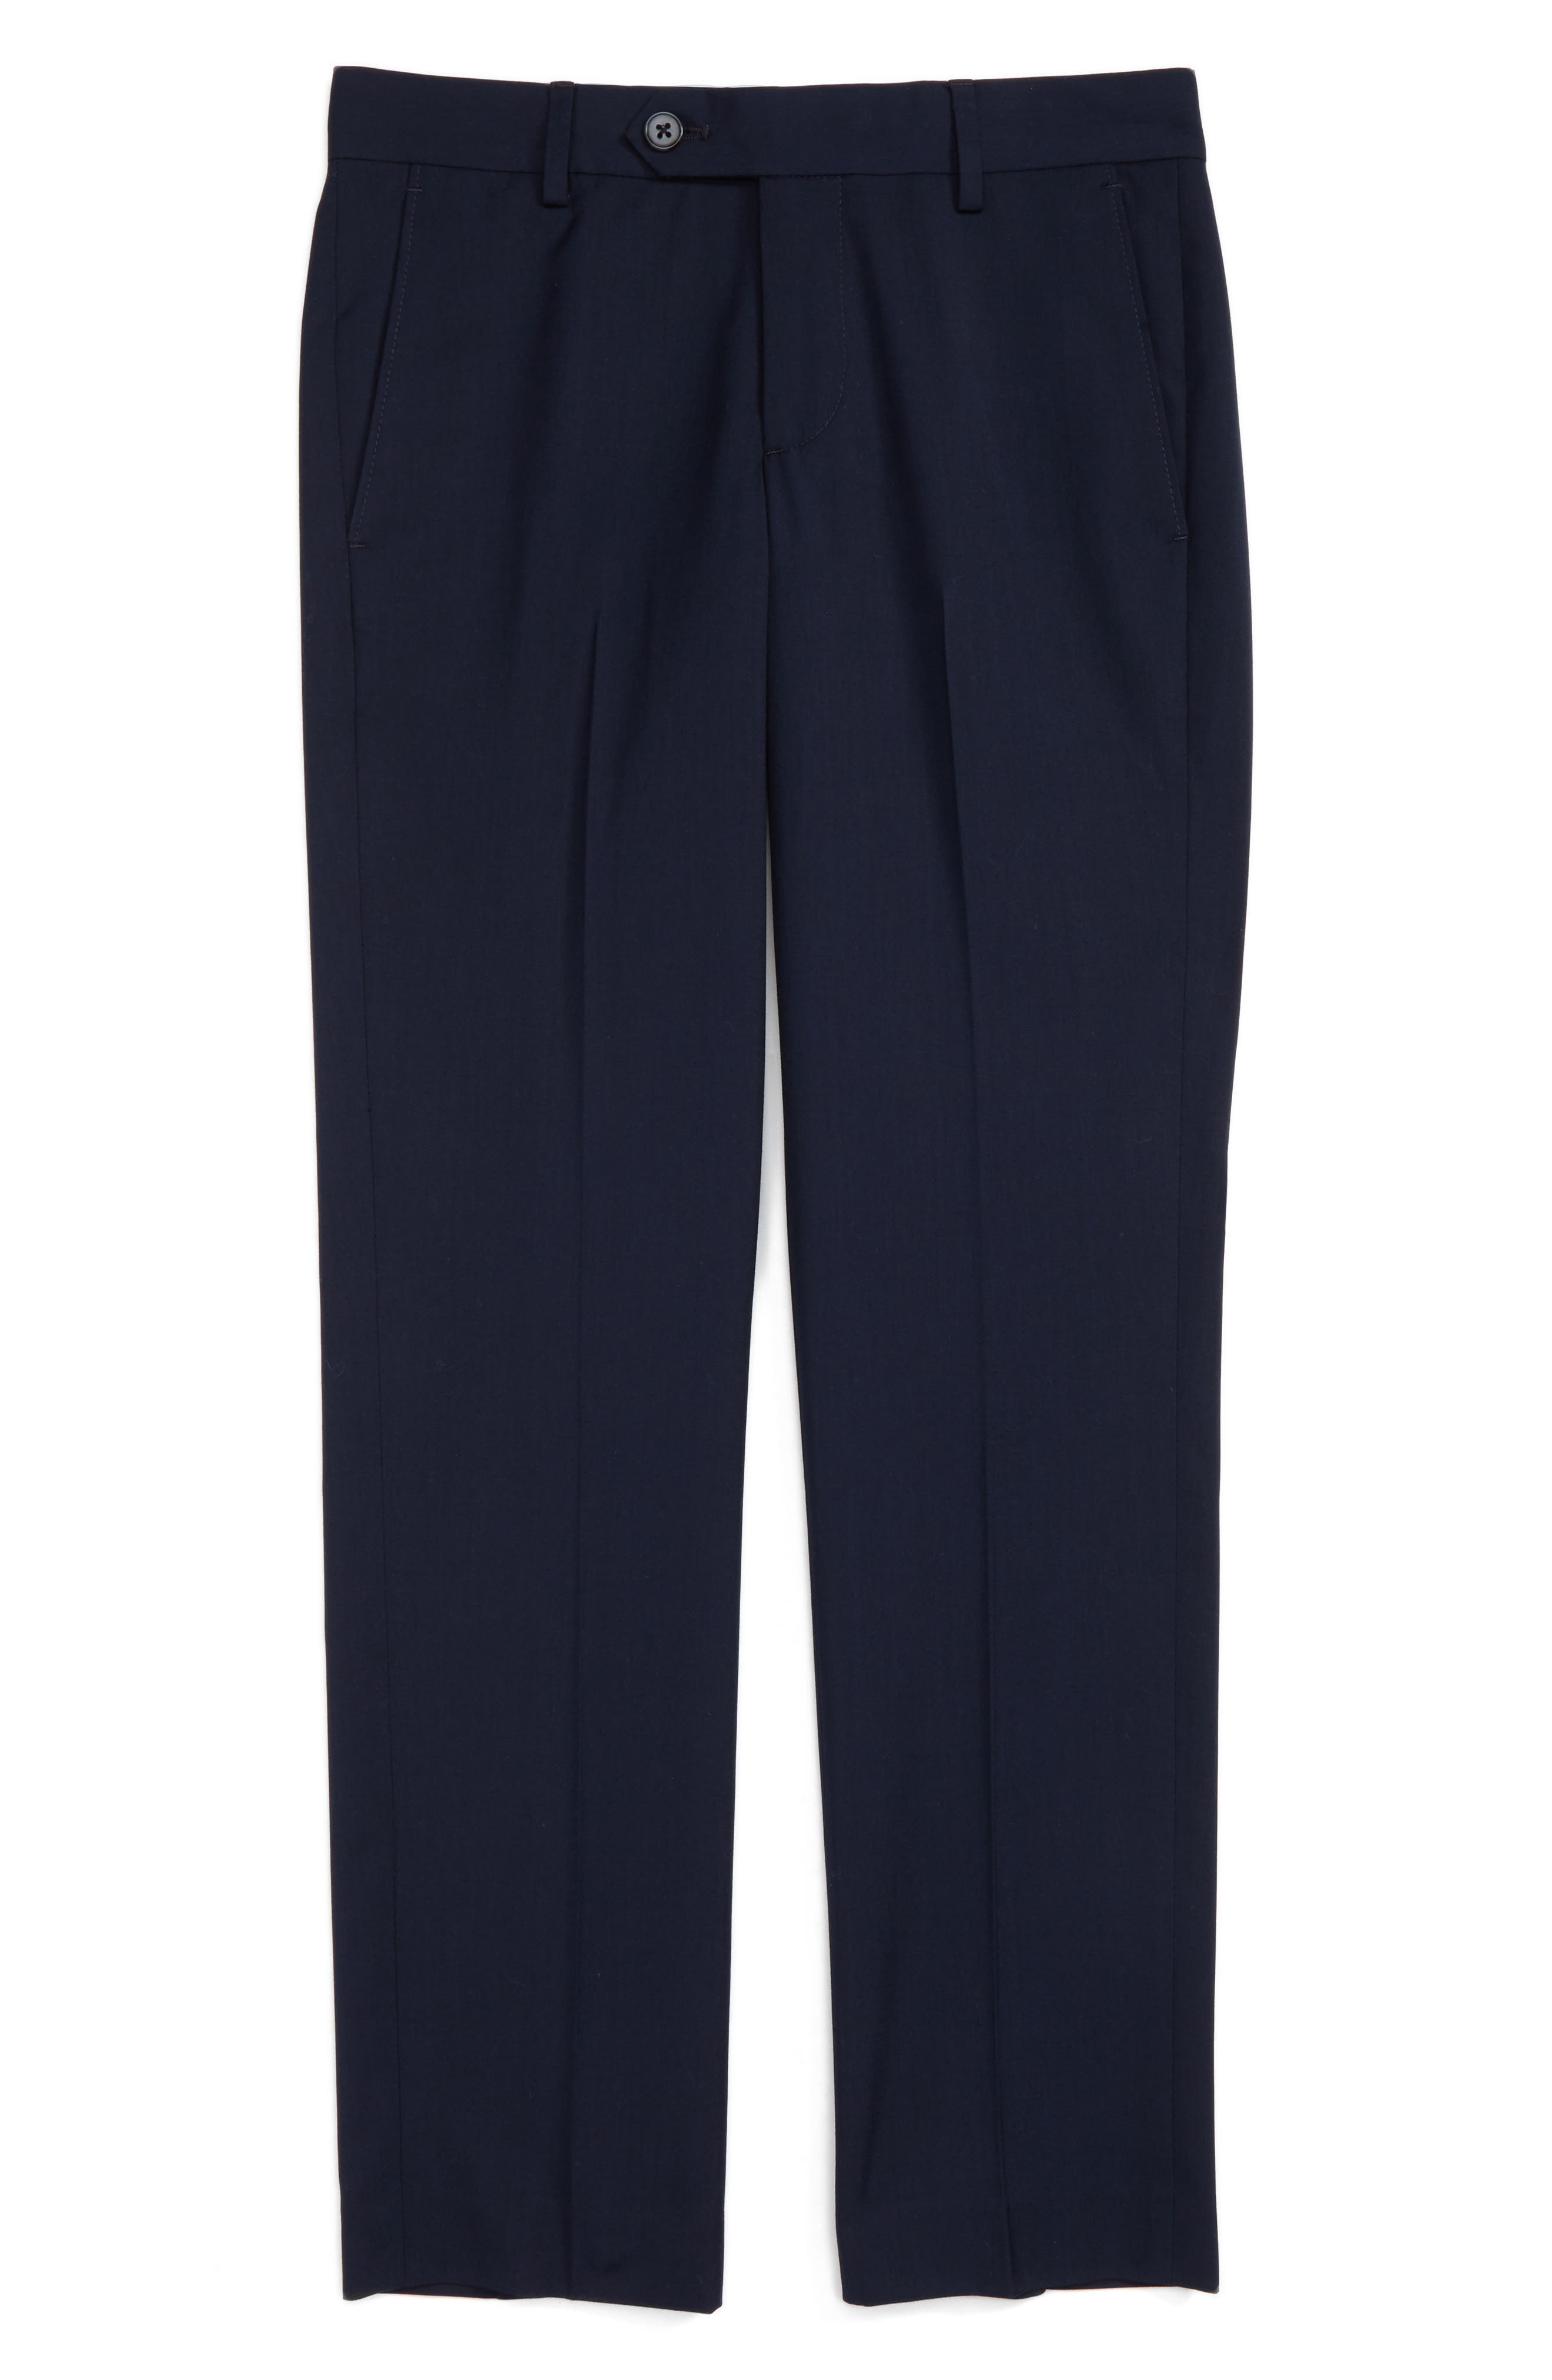 Nordstrom Elliott Slim Fit Flat Front Trousers (Toddler Boys, Little Boys & Big Boys)